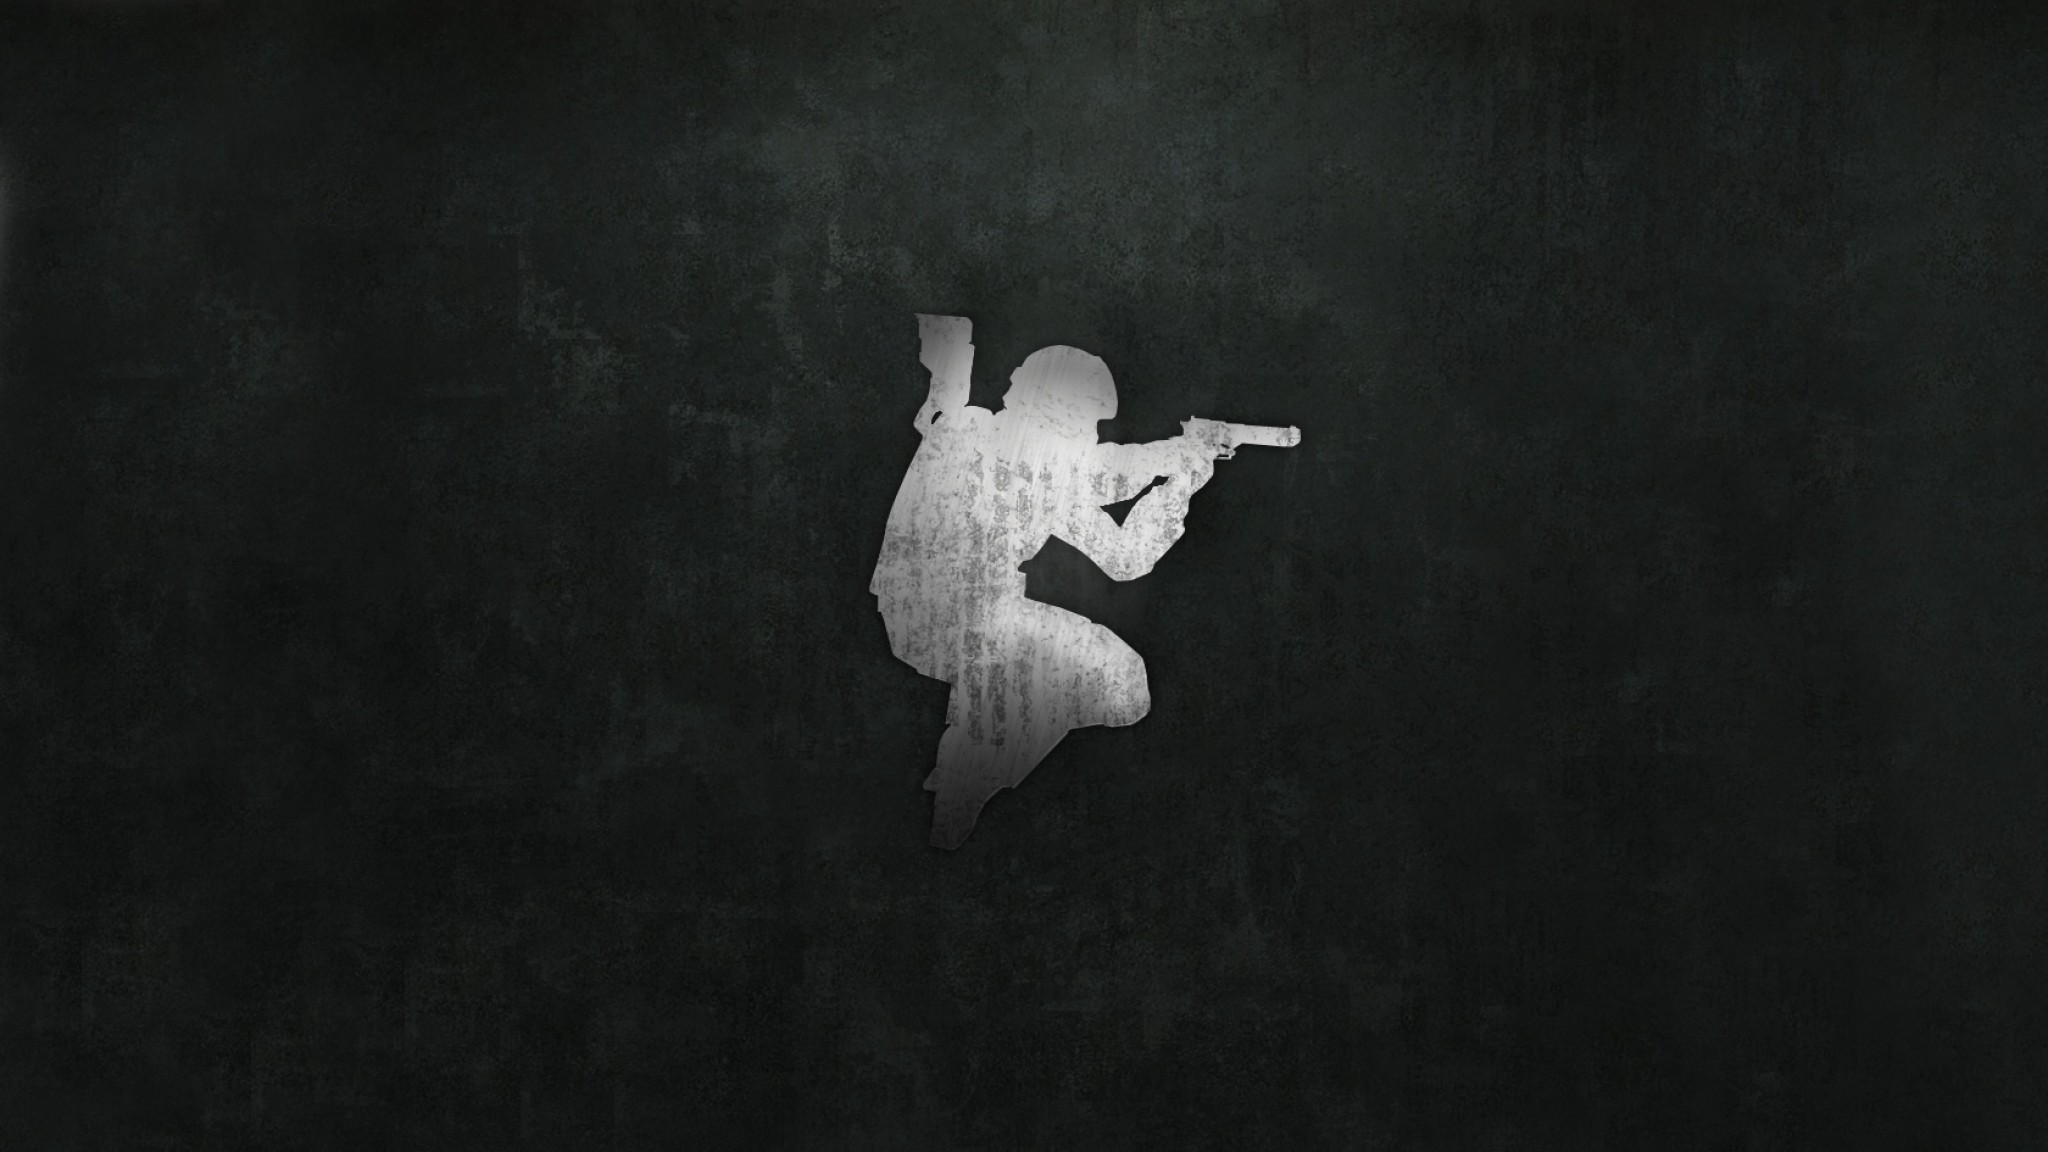 2048x1152  Wallpaper counter-strike, picture, background, pistol, soldier